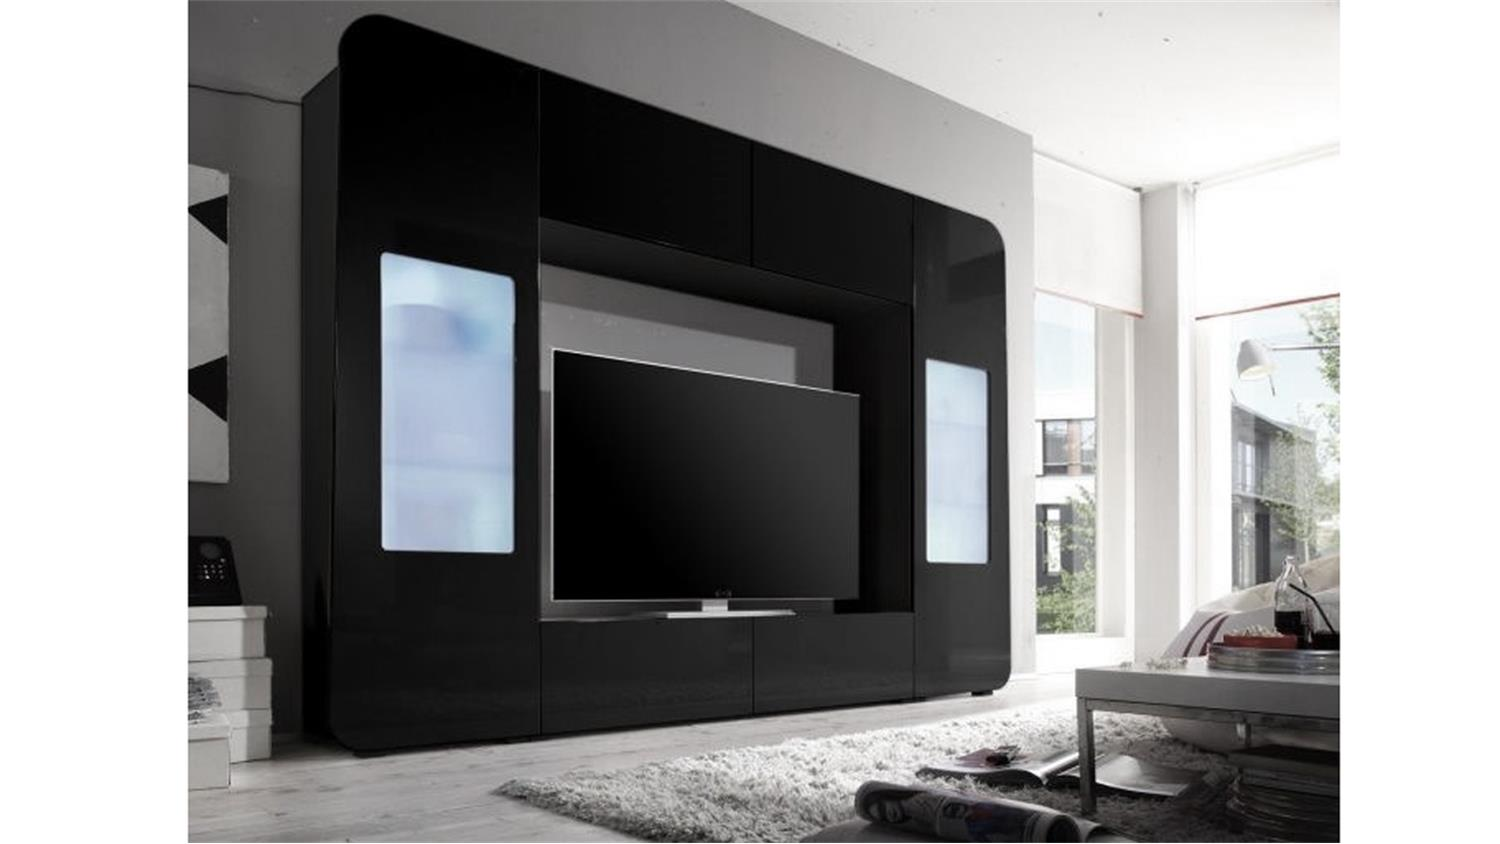 kleines zimmer mit schr ge einrichten. Black Bedroom Furniture Sets. Home Design Ideas